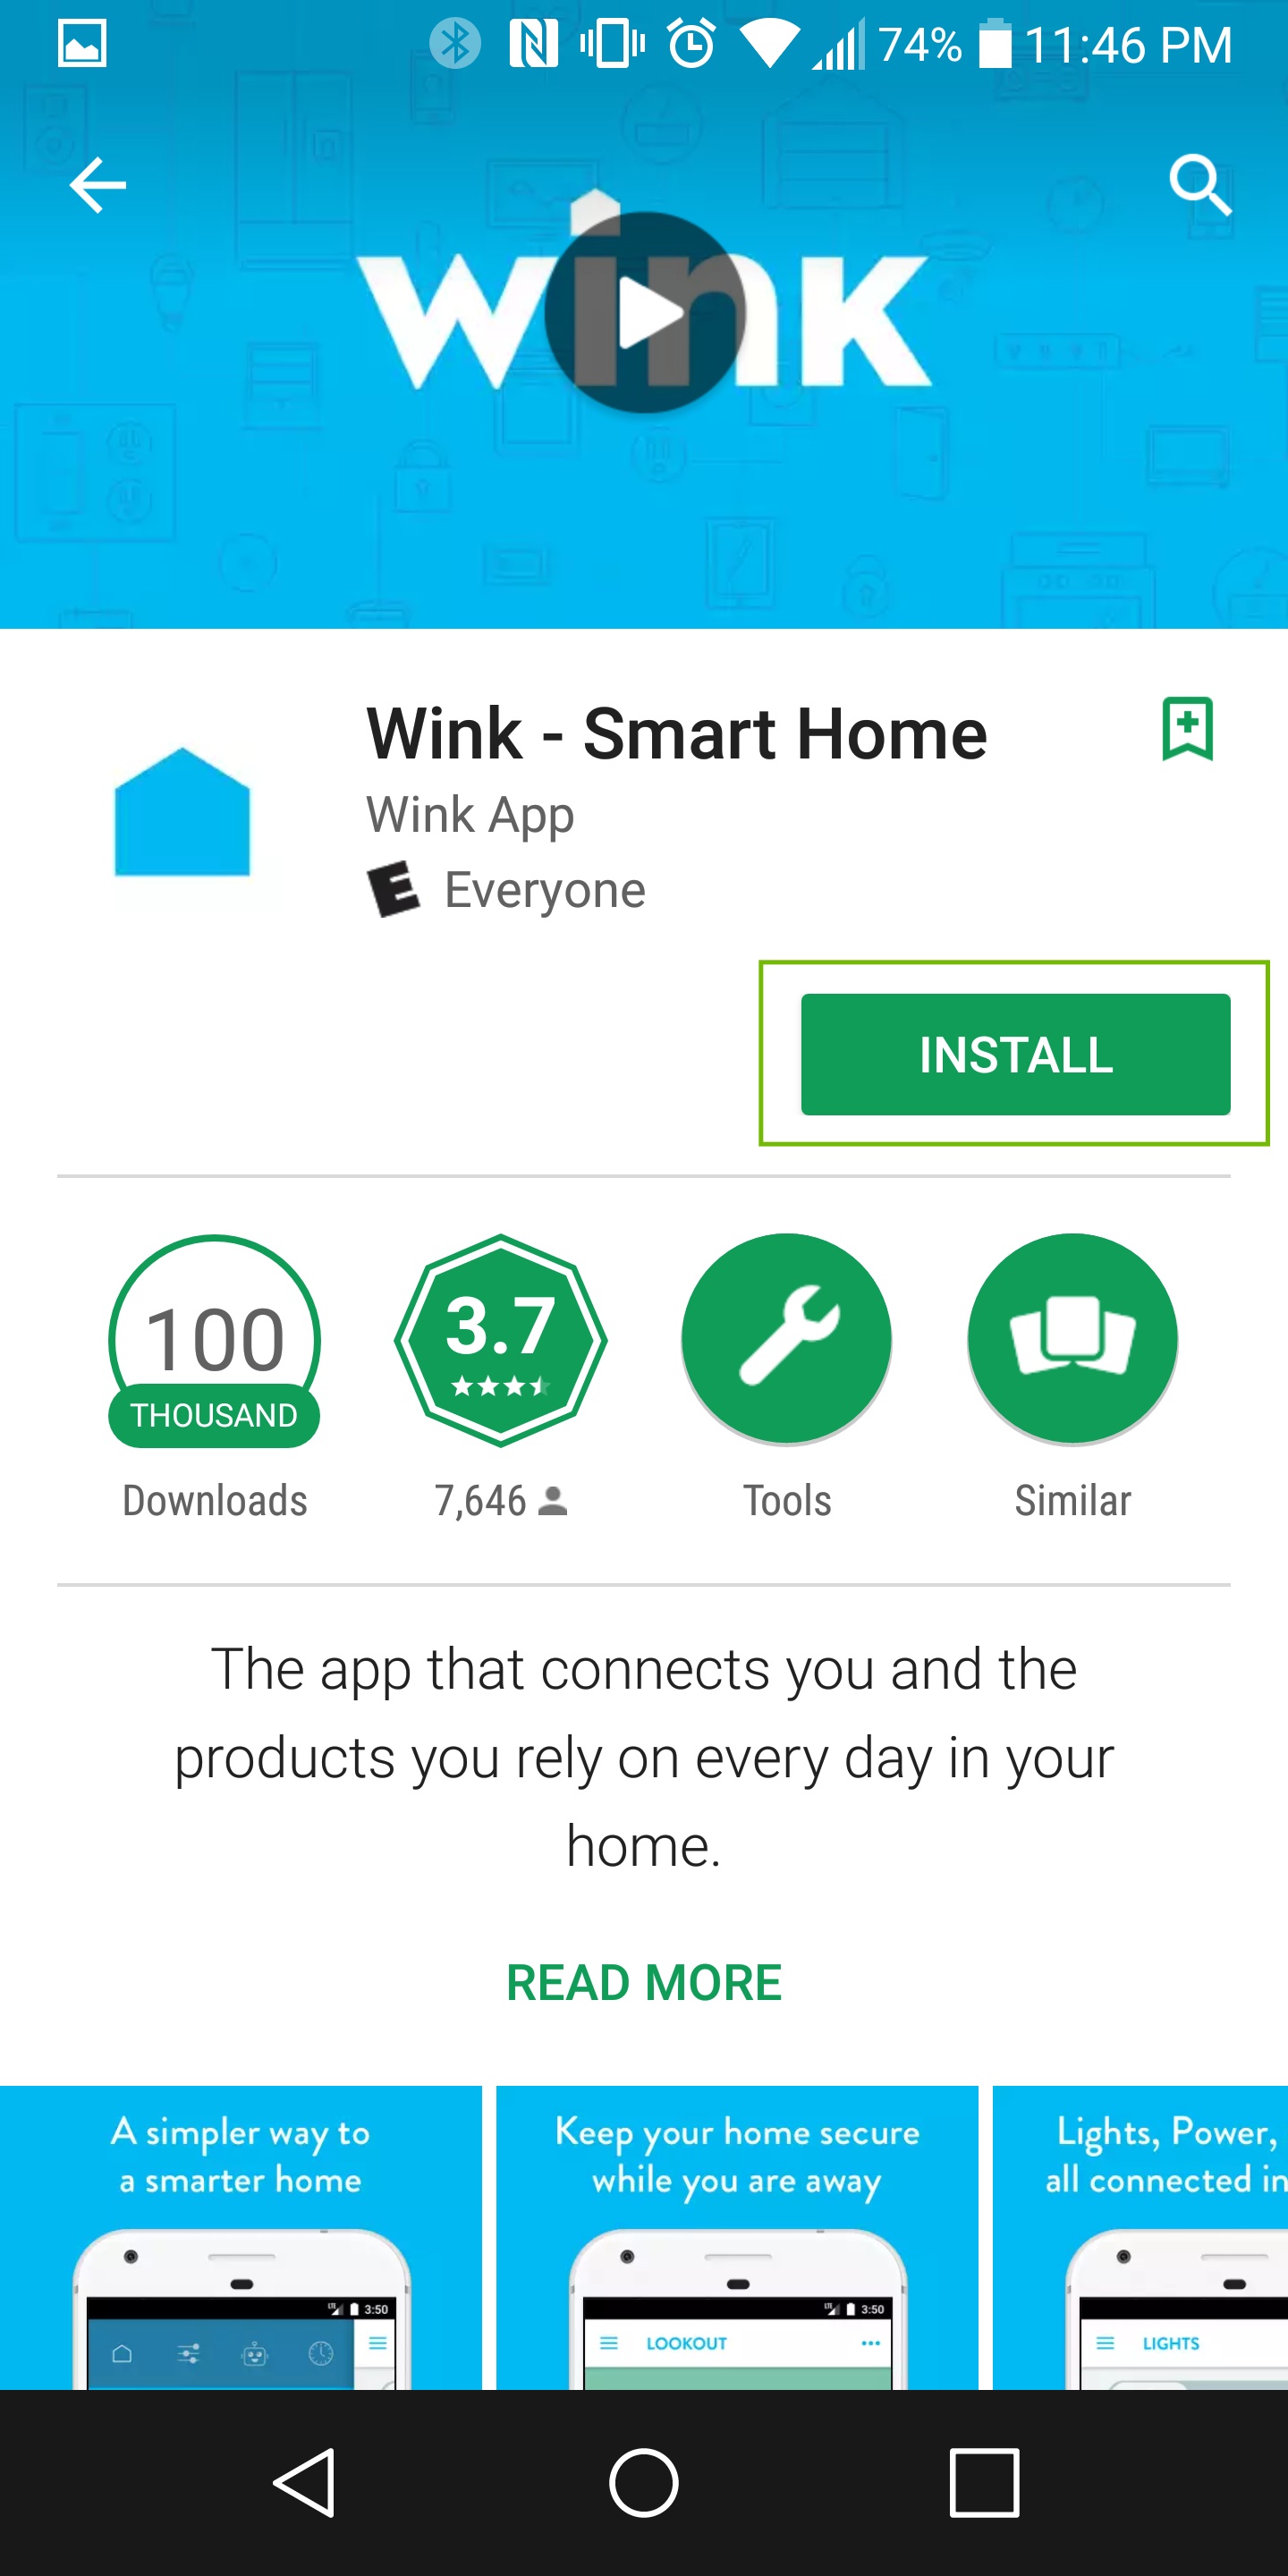 wink app page with install highlighted